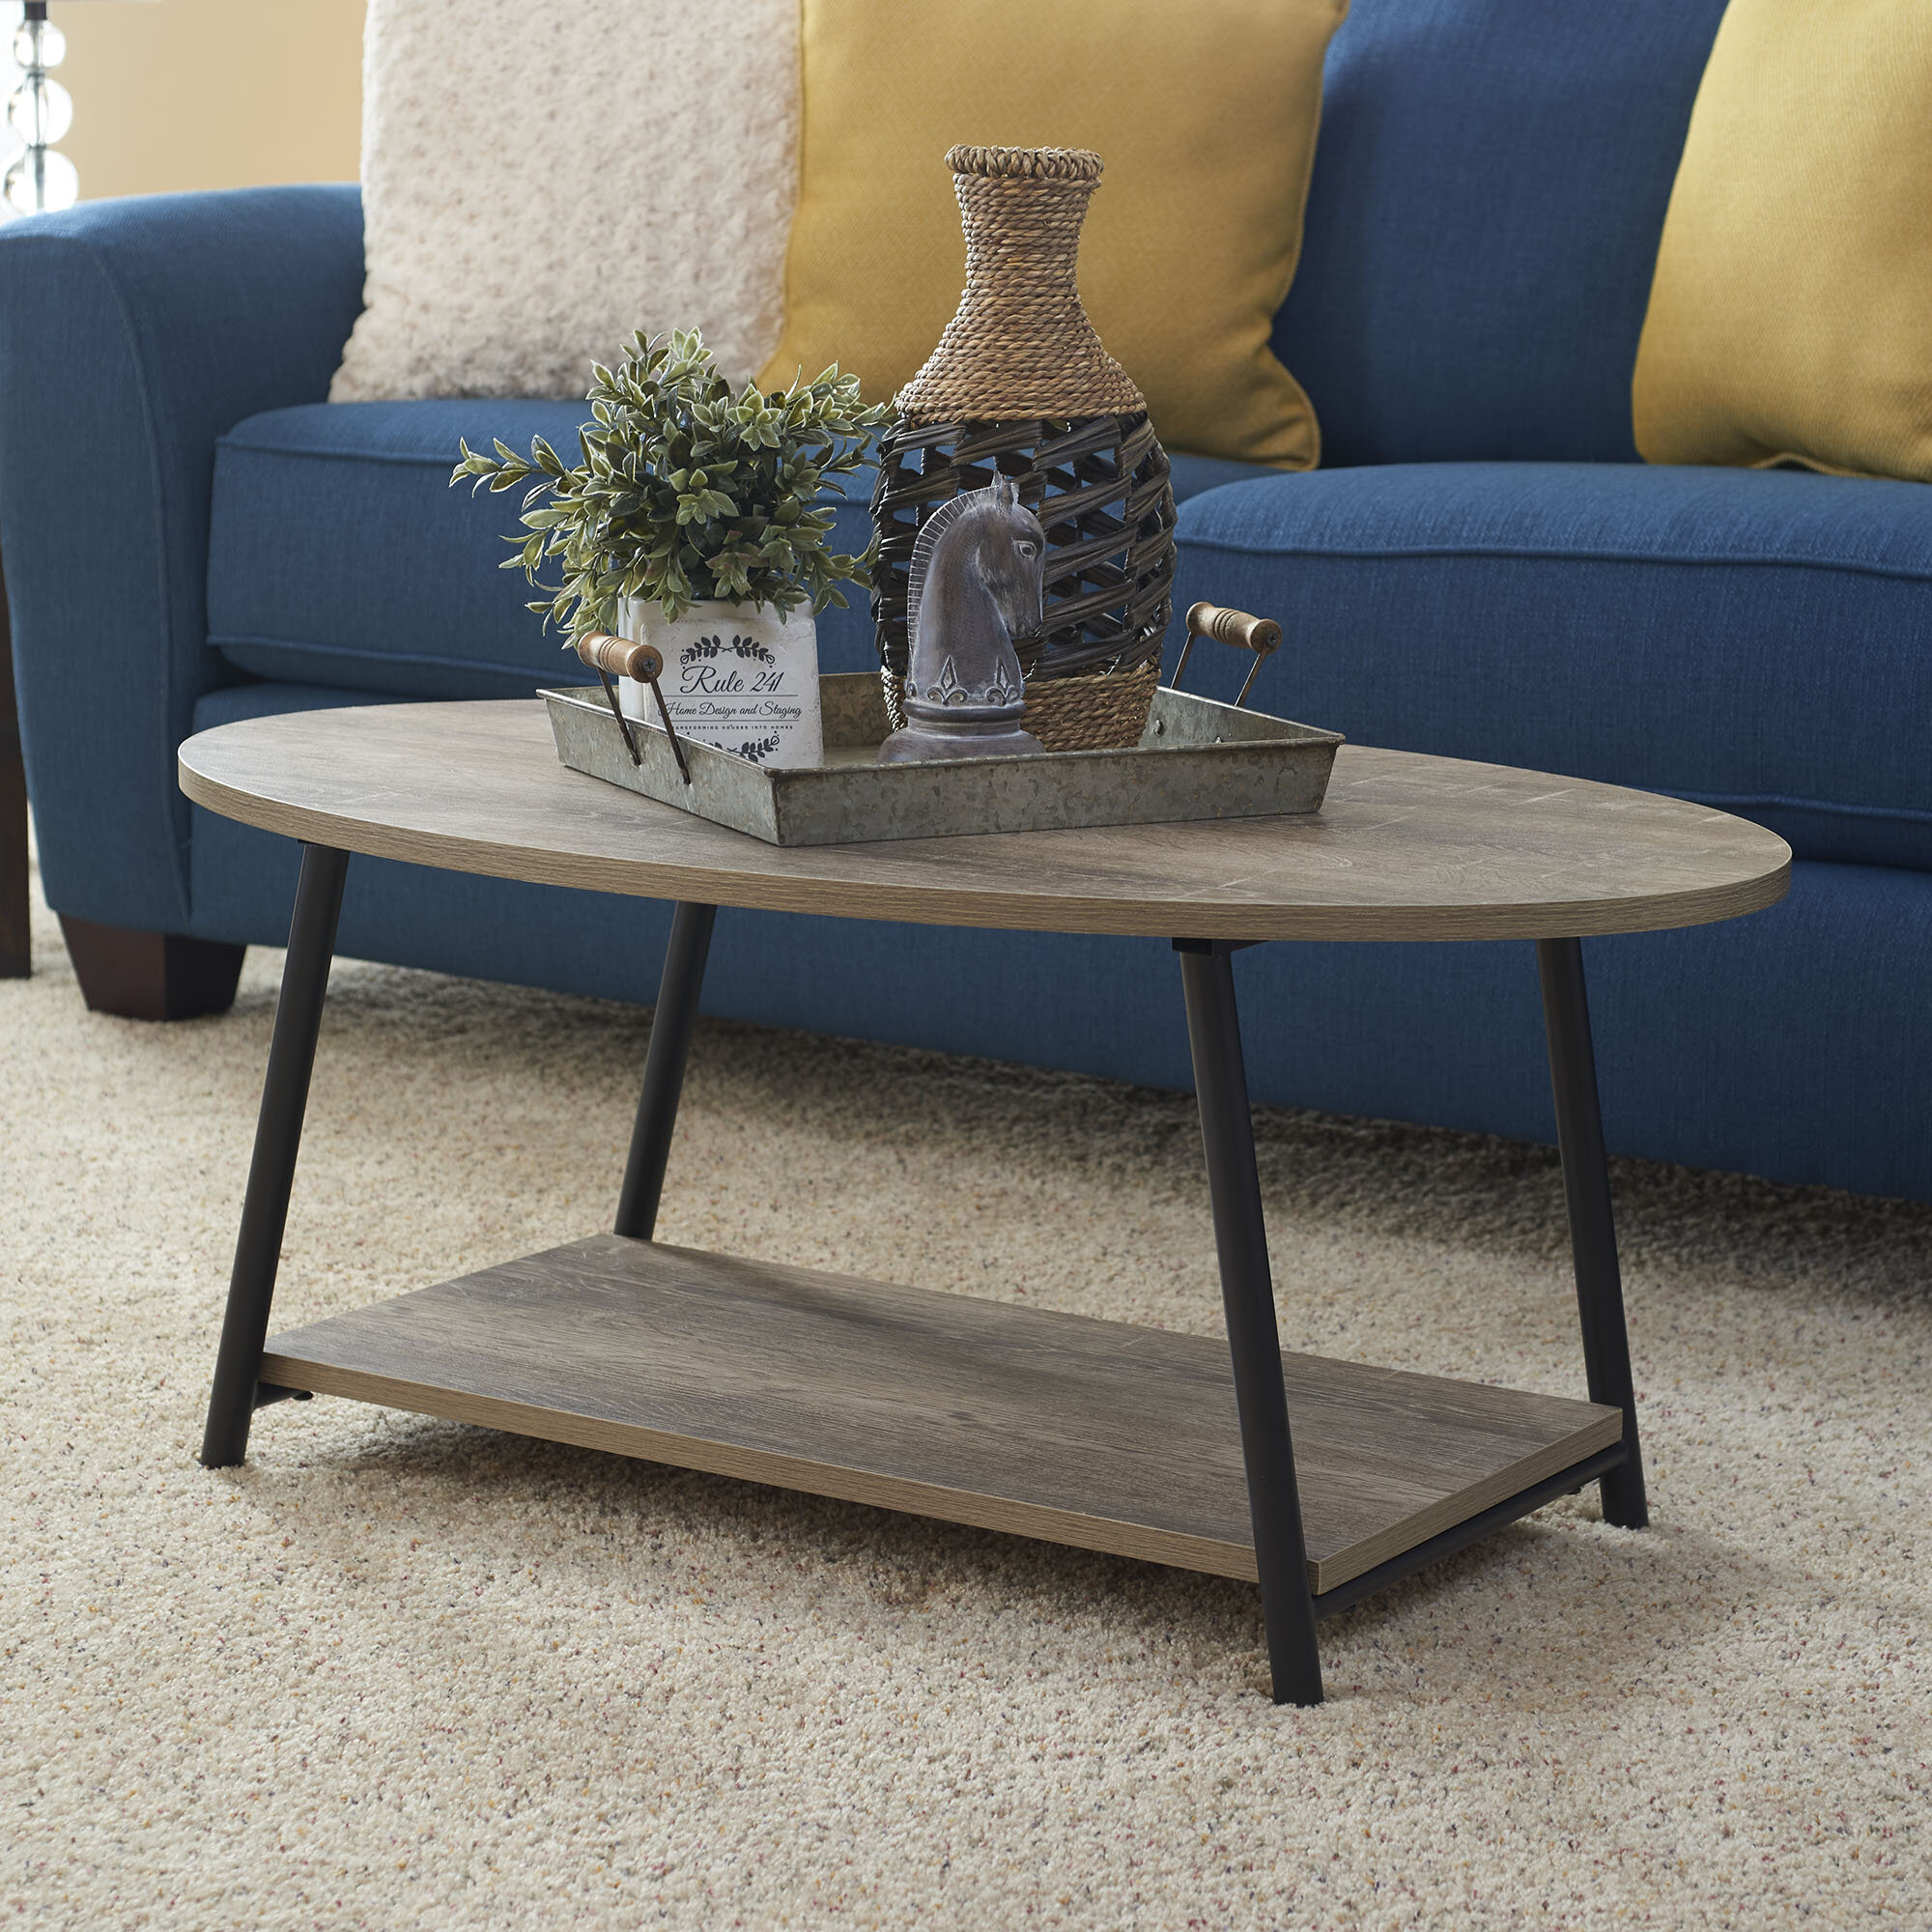 Oval Coffee Tables Free Shipping Over 35 Wayfair